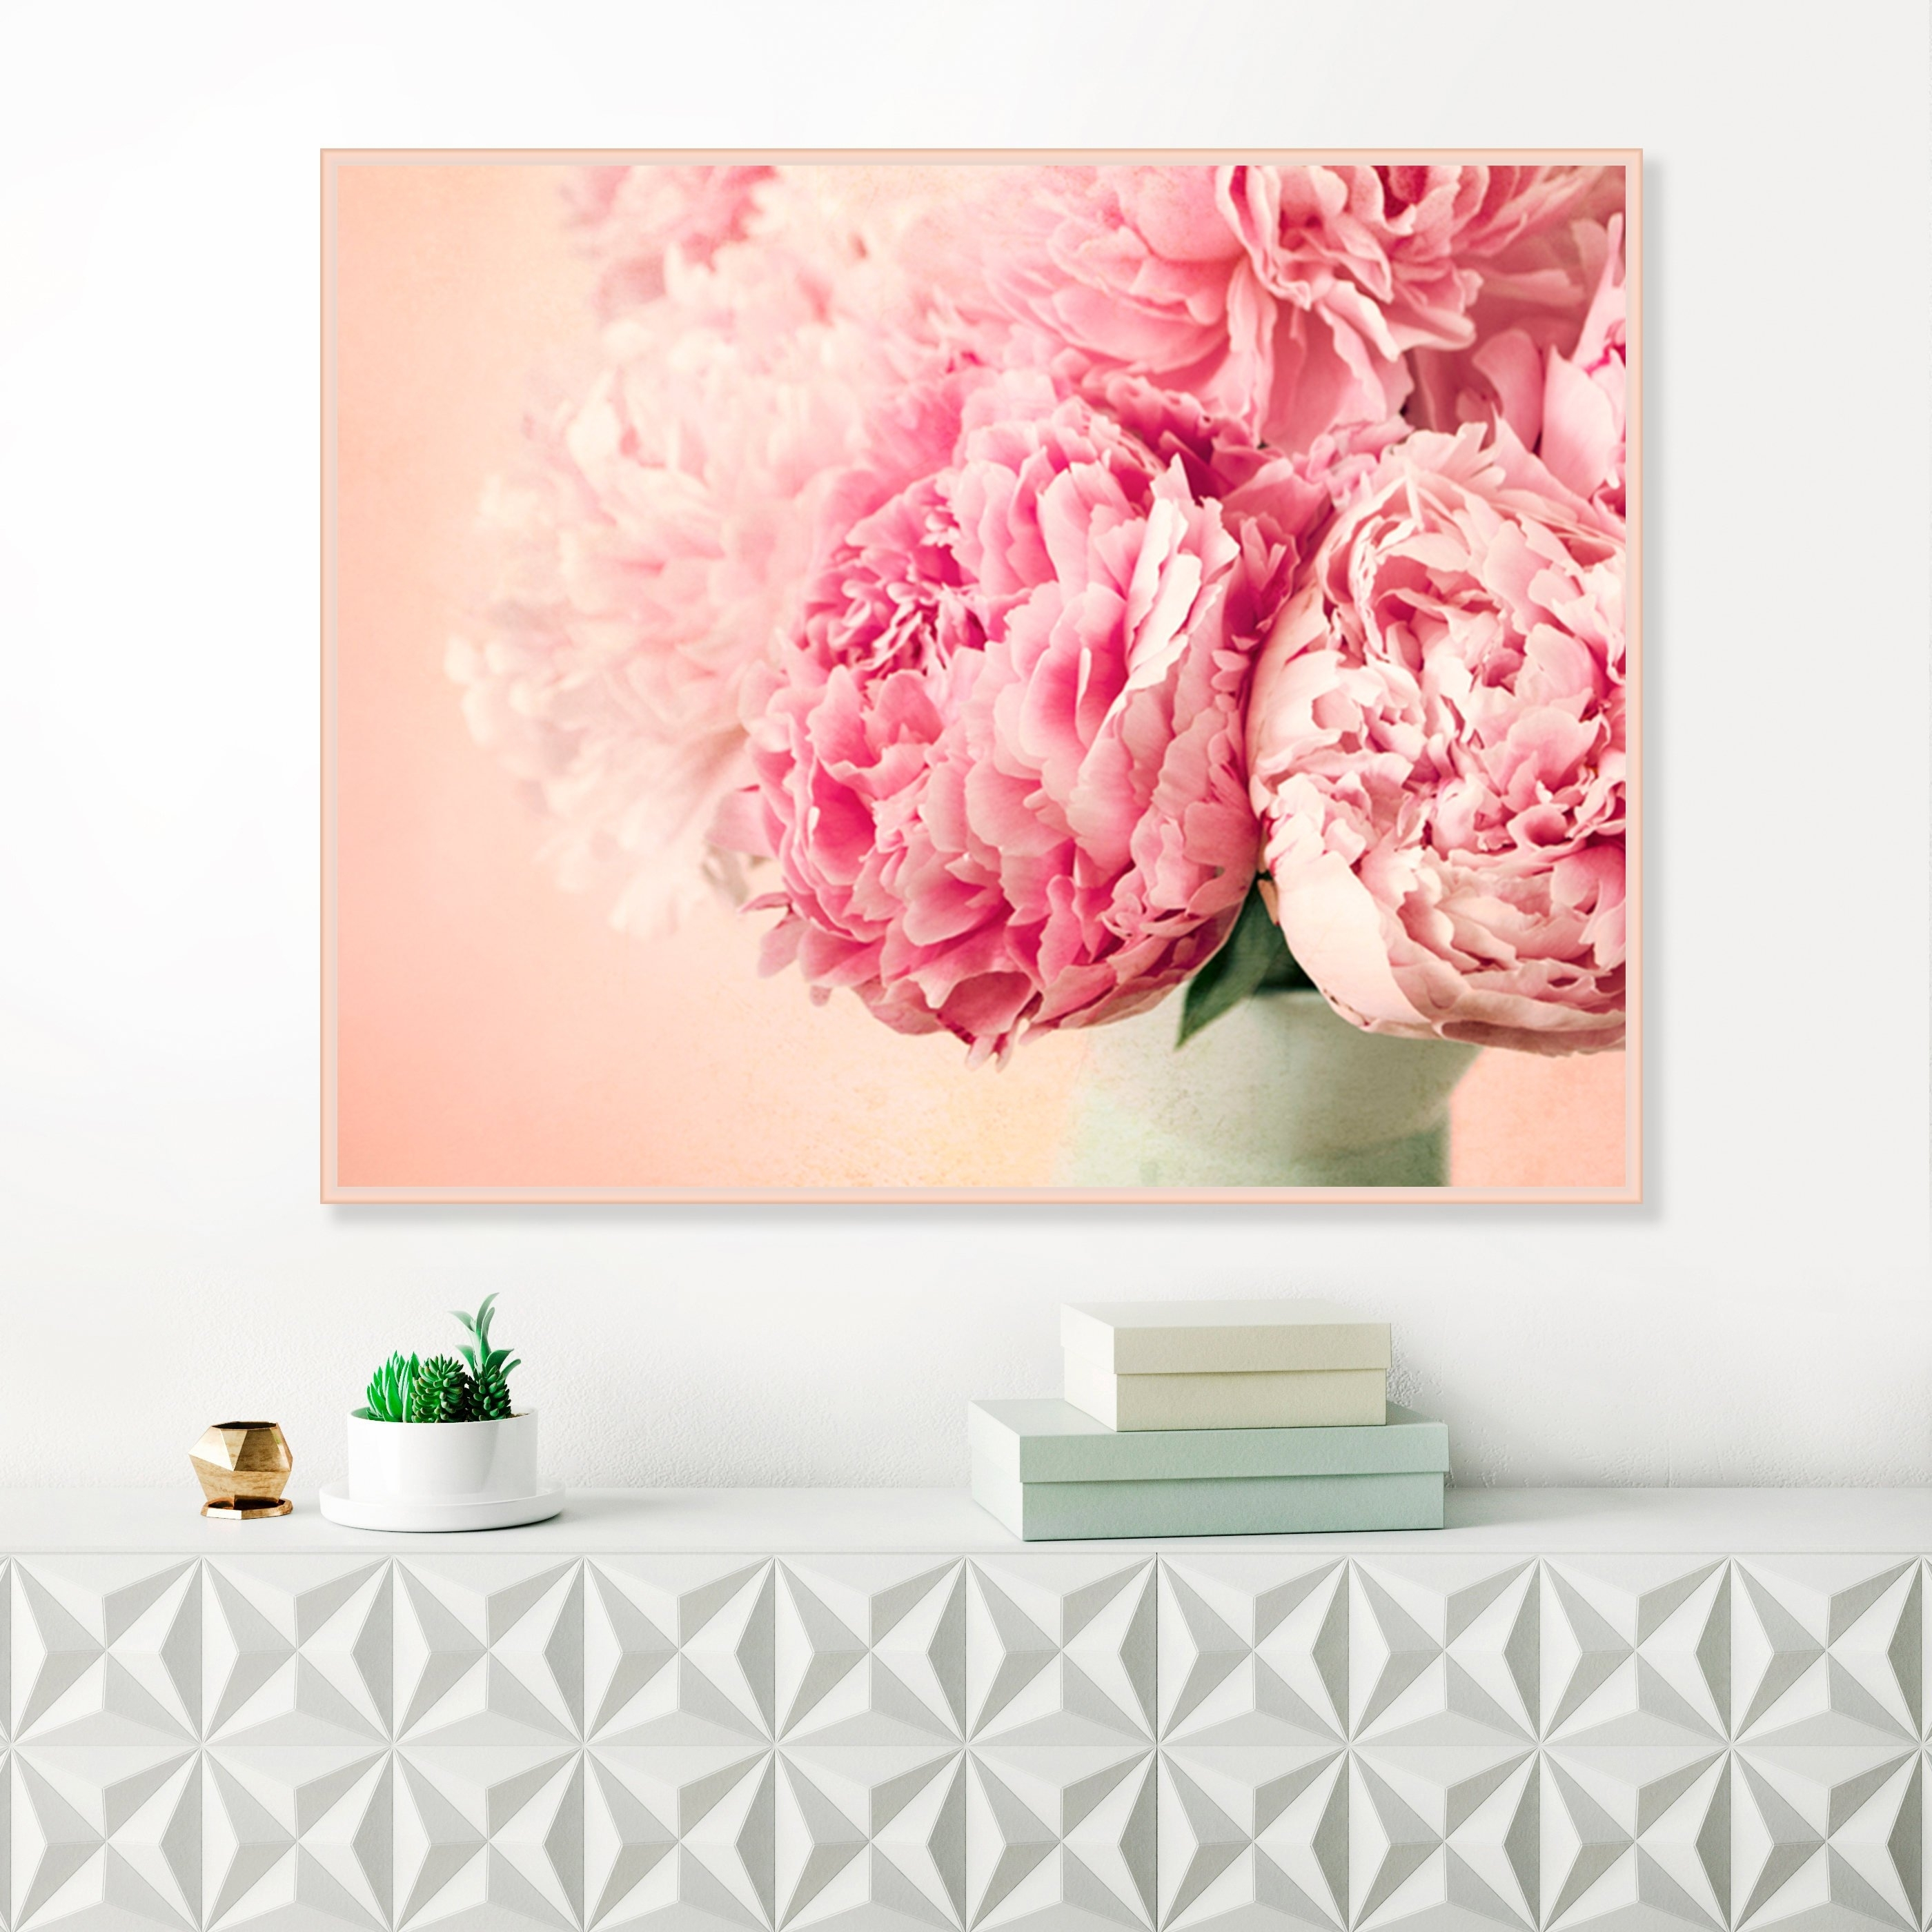 Pink Peonies, Flower Prints, Blush Pink Wall Art, Peonies Still Life Intended For Most Recent Pink Wall Art (View 18 of 20)